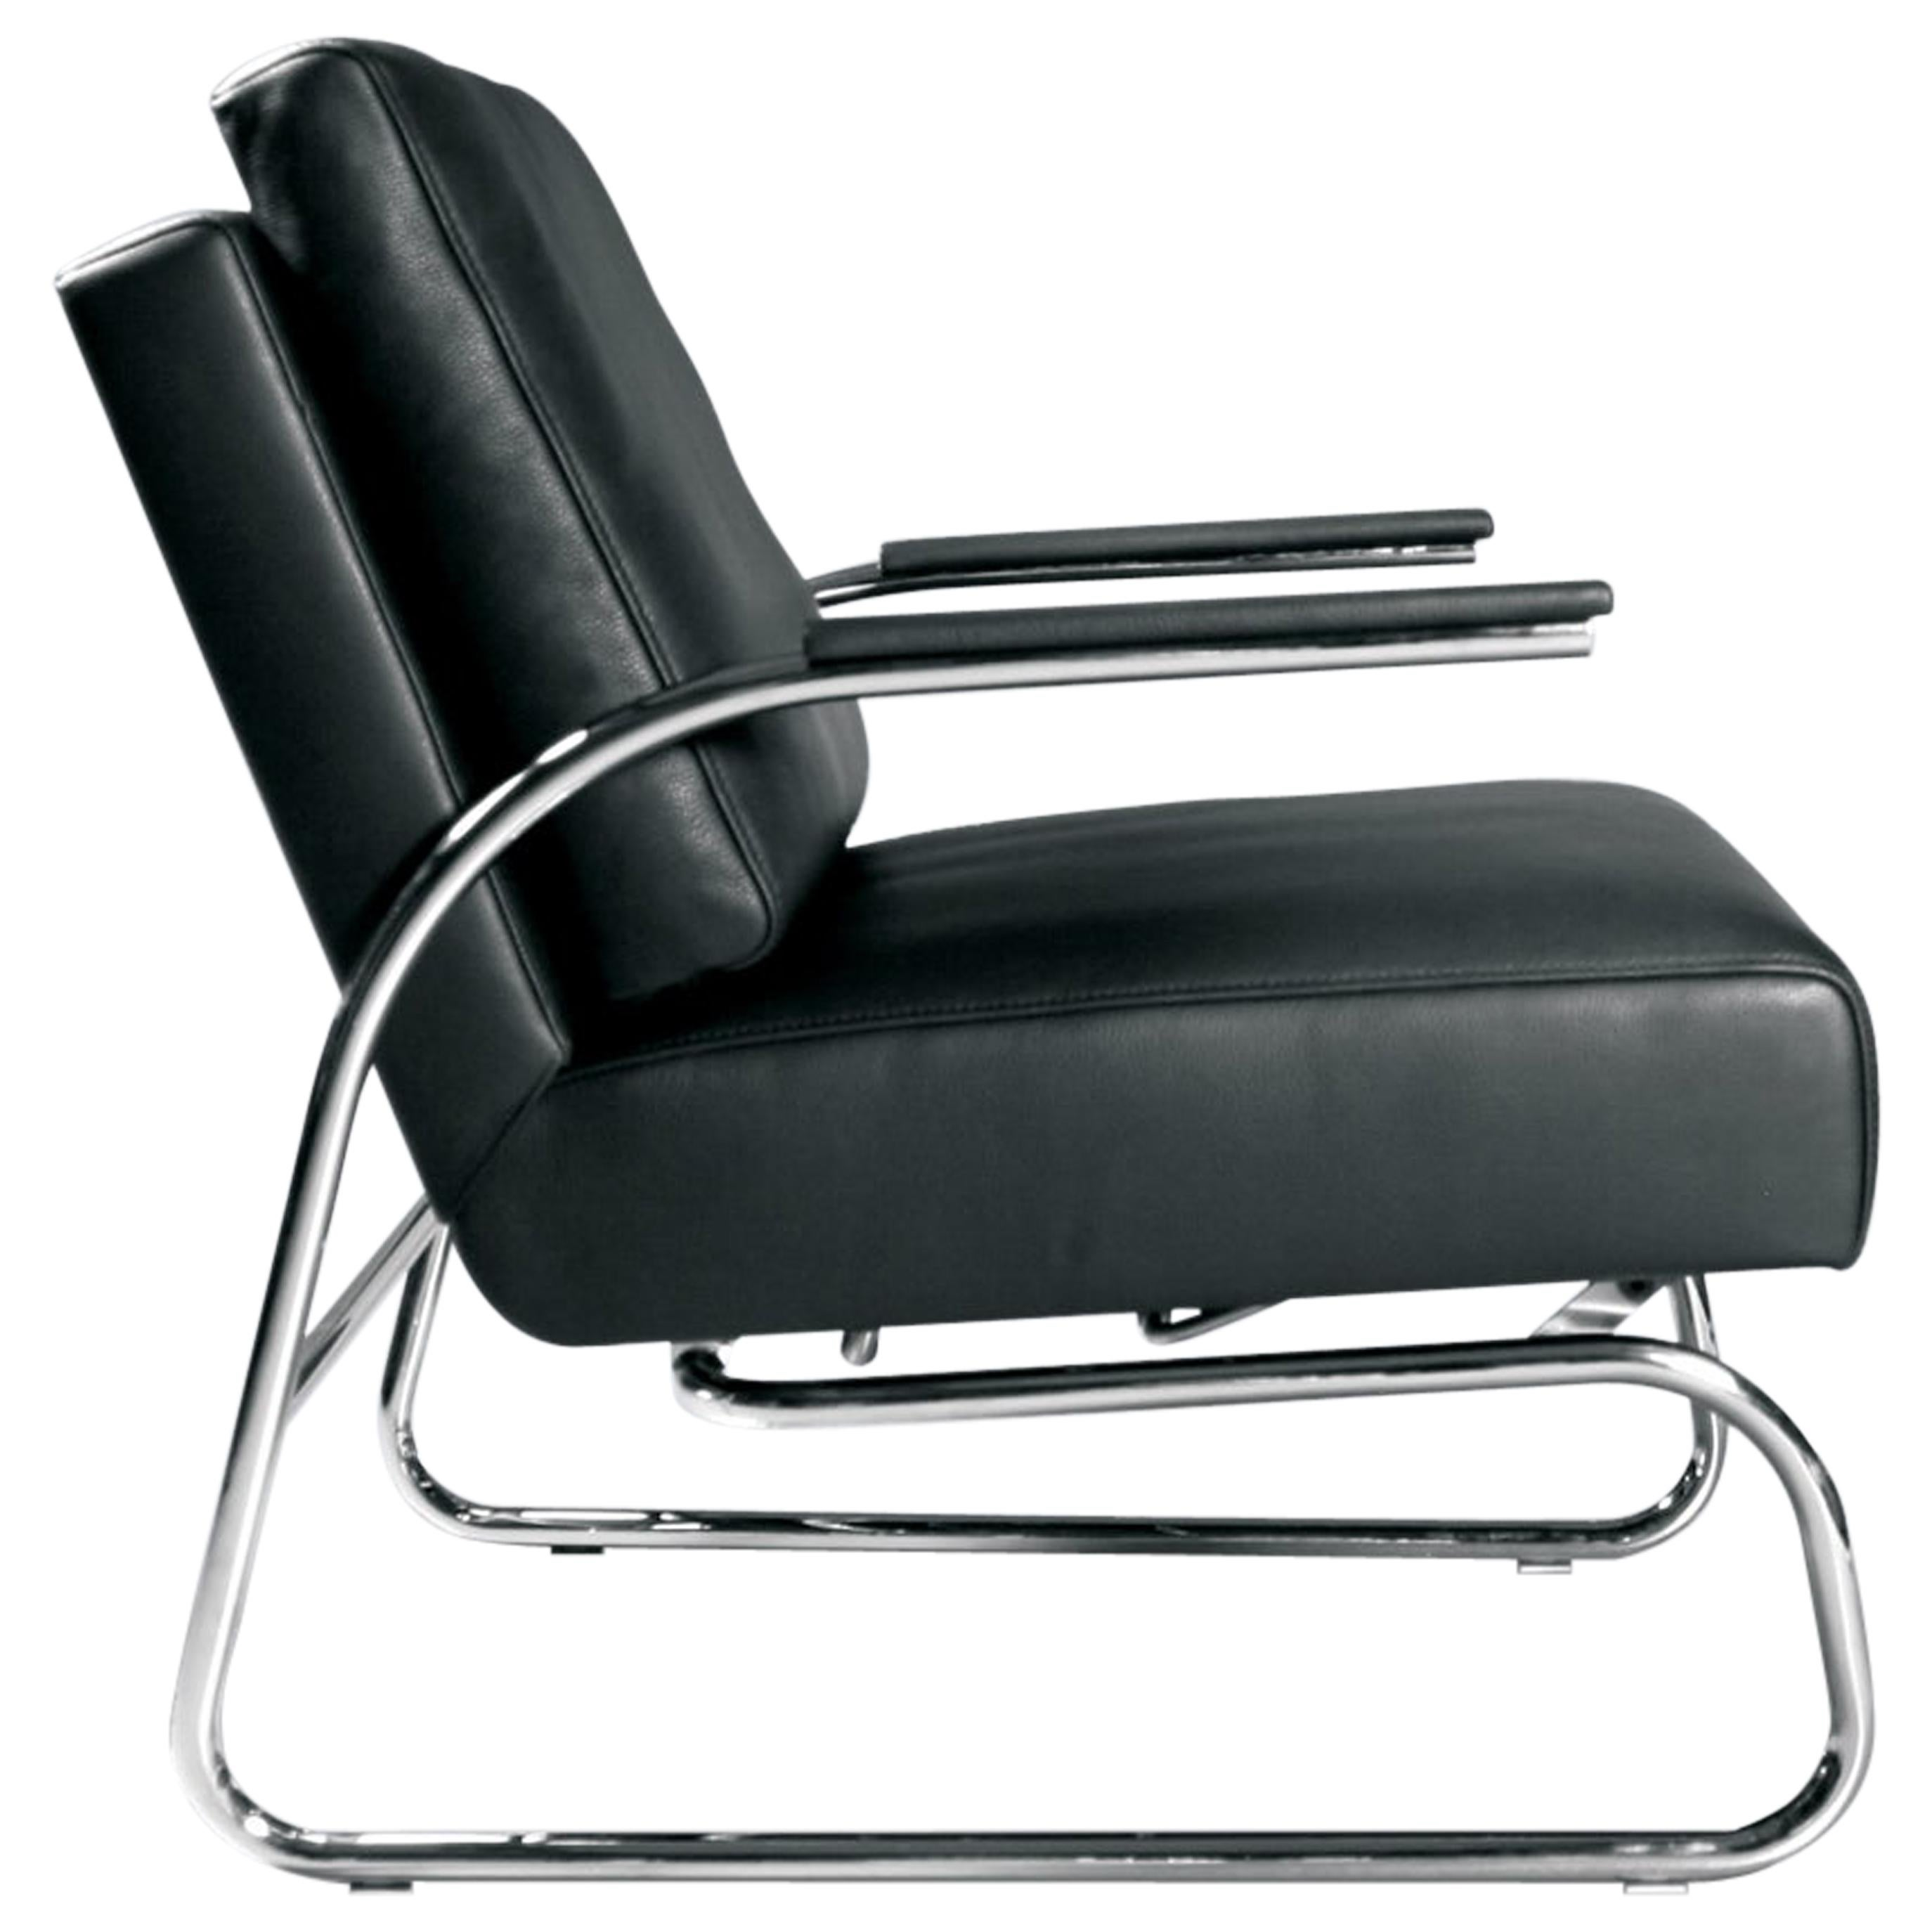 Bauhaus Gabo Adjustable Cantilever Leather Chair by FSM